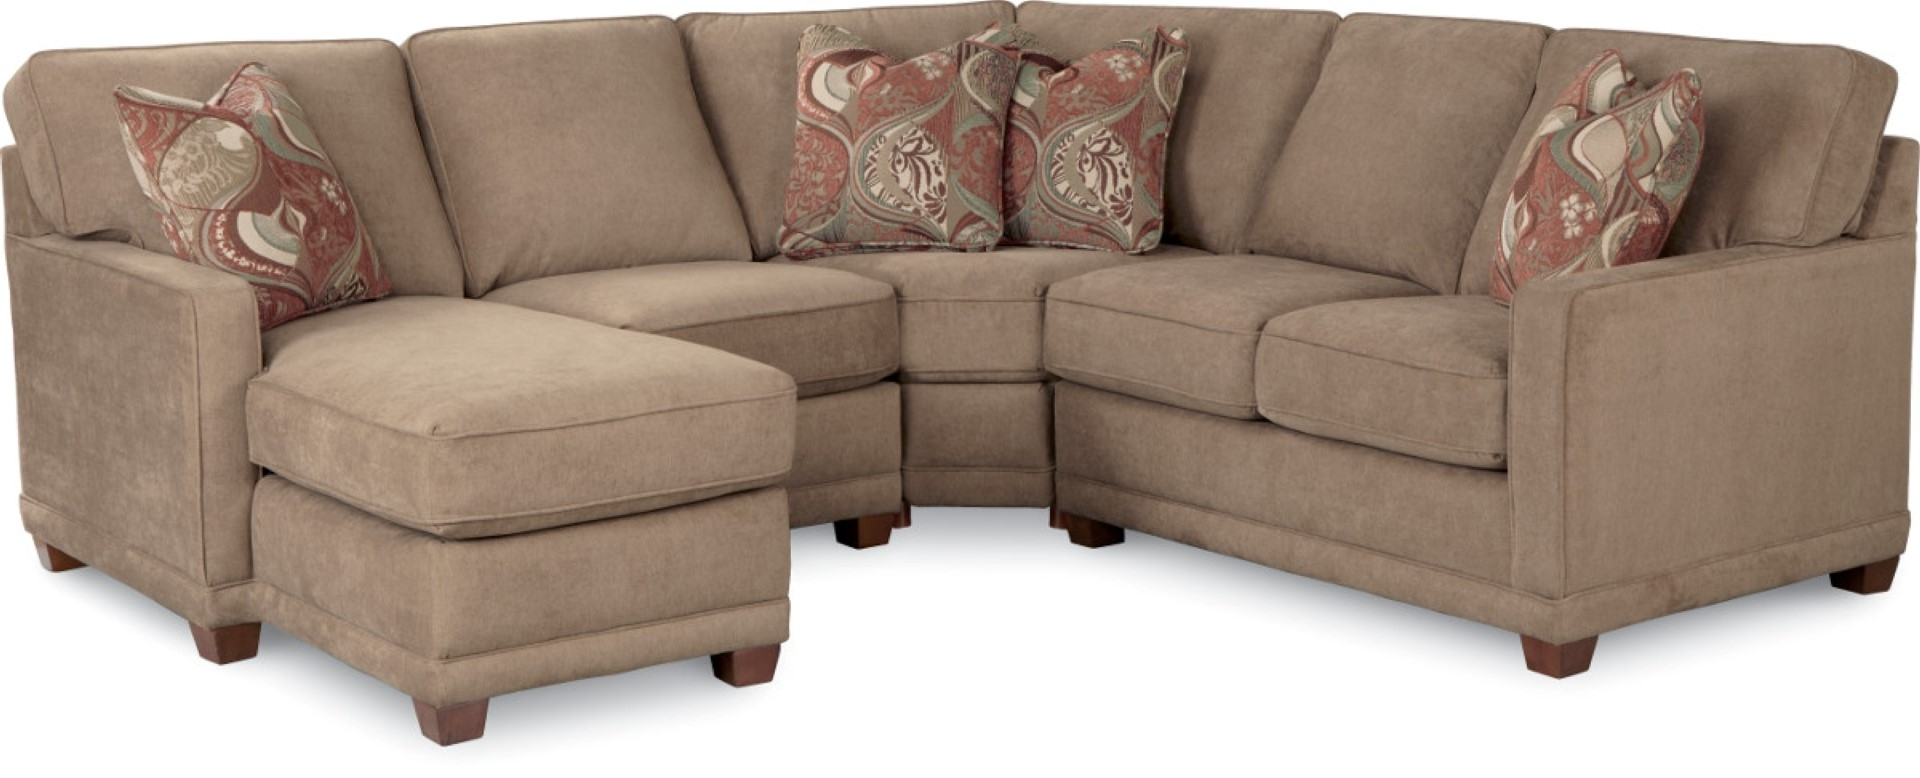 Kennedy Sectional Sofa – Town & Country Furniture With Regard To Well Known La Z Boy Sectional Sofas (View 2 of 20)